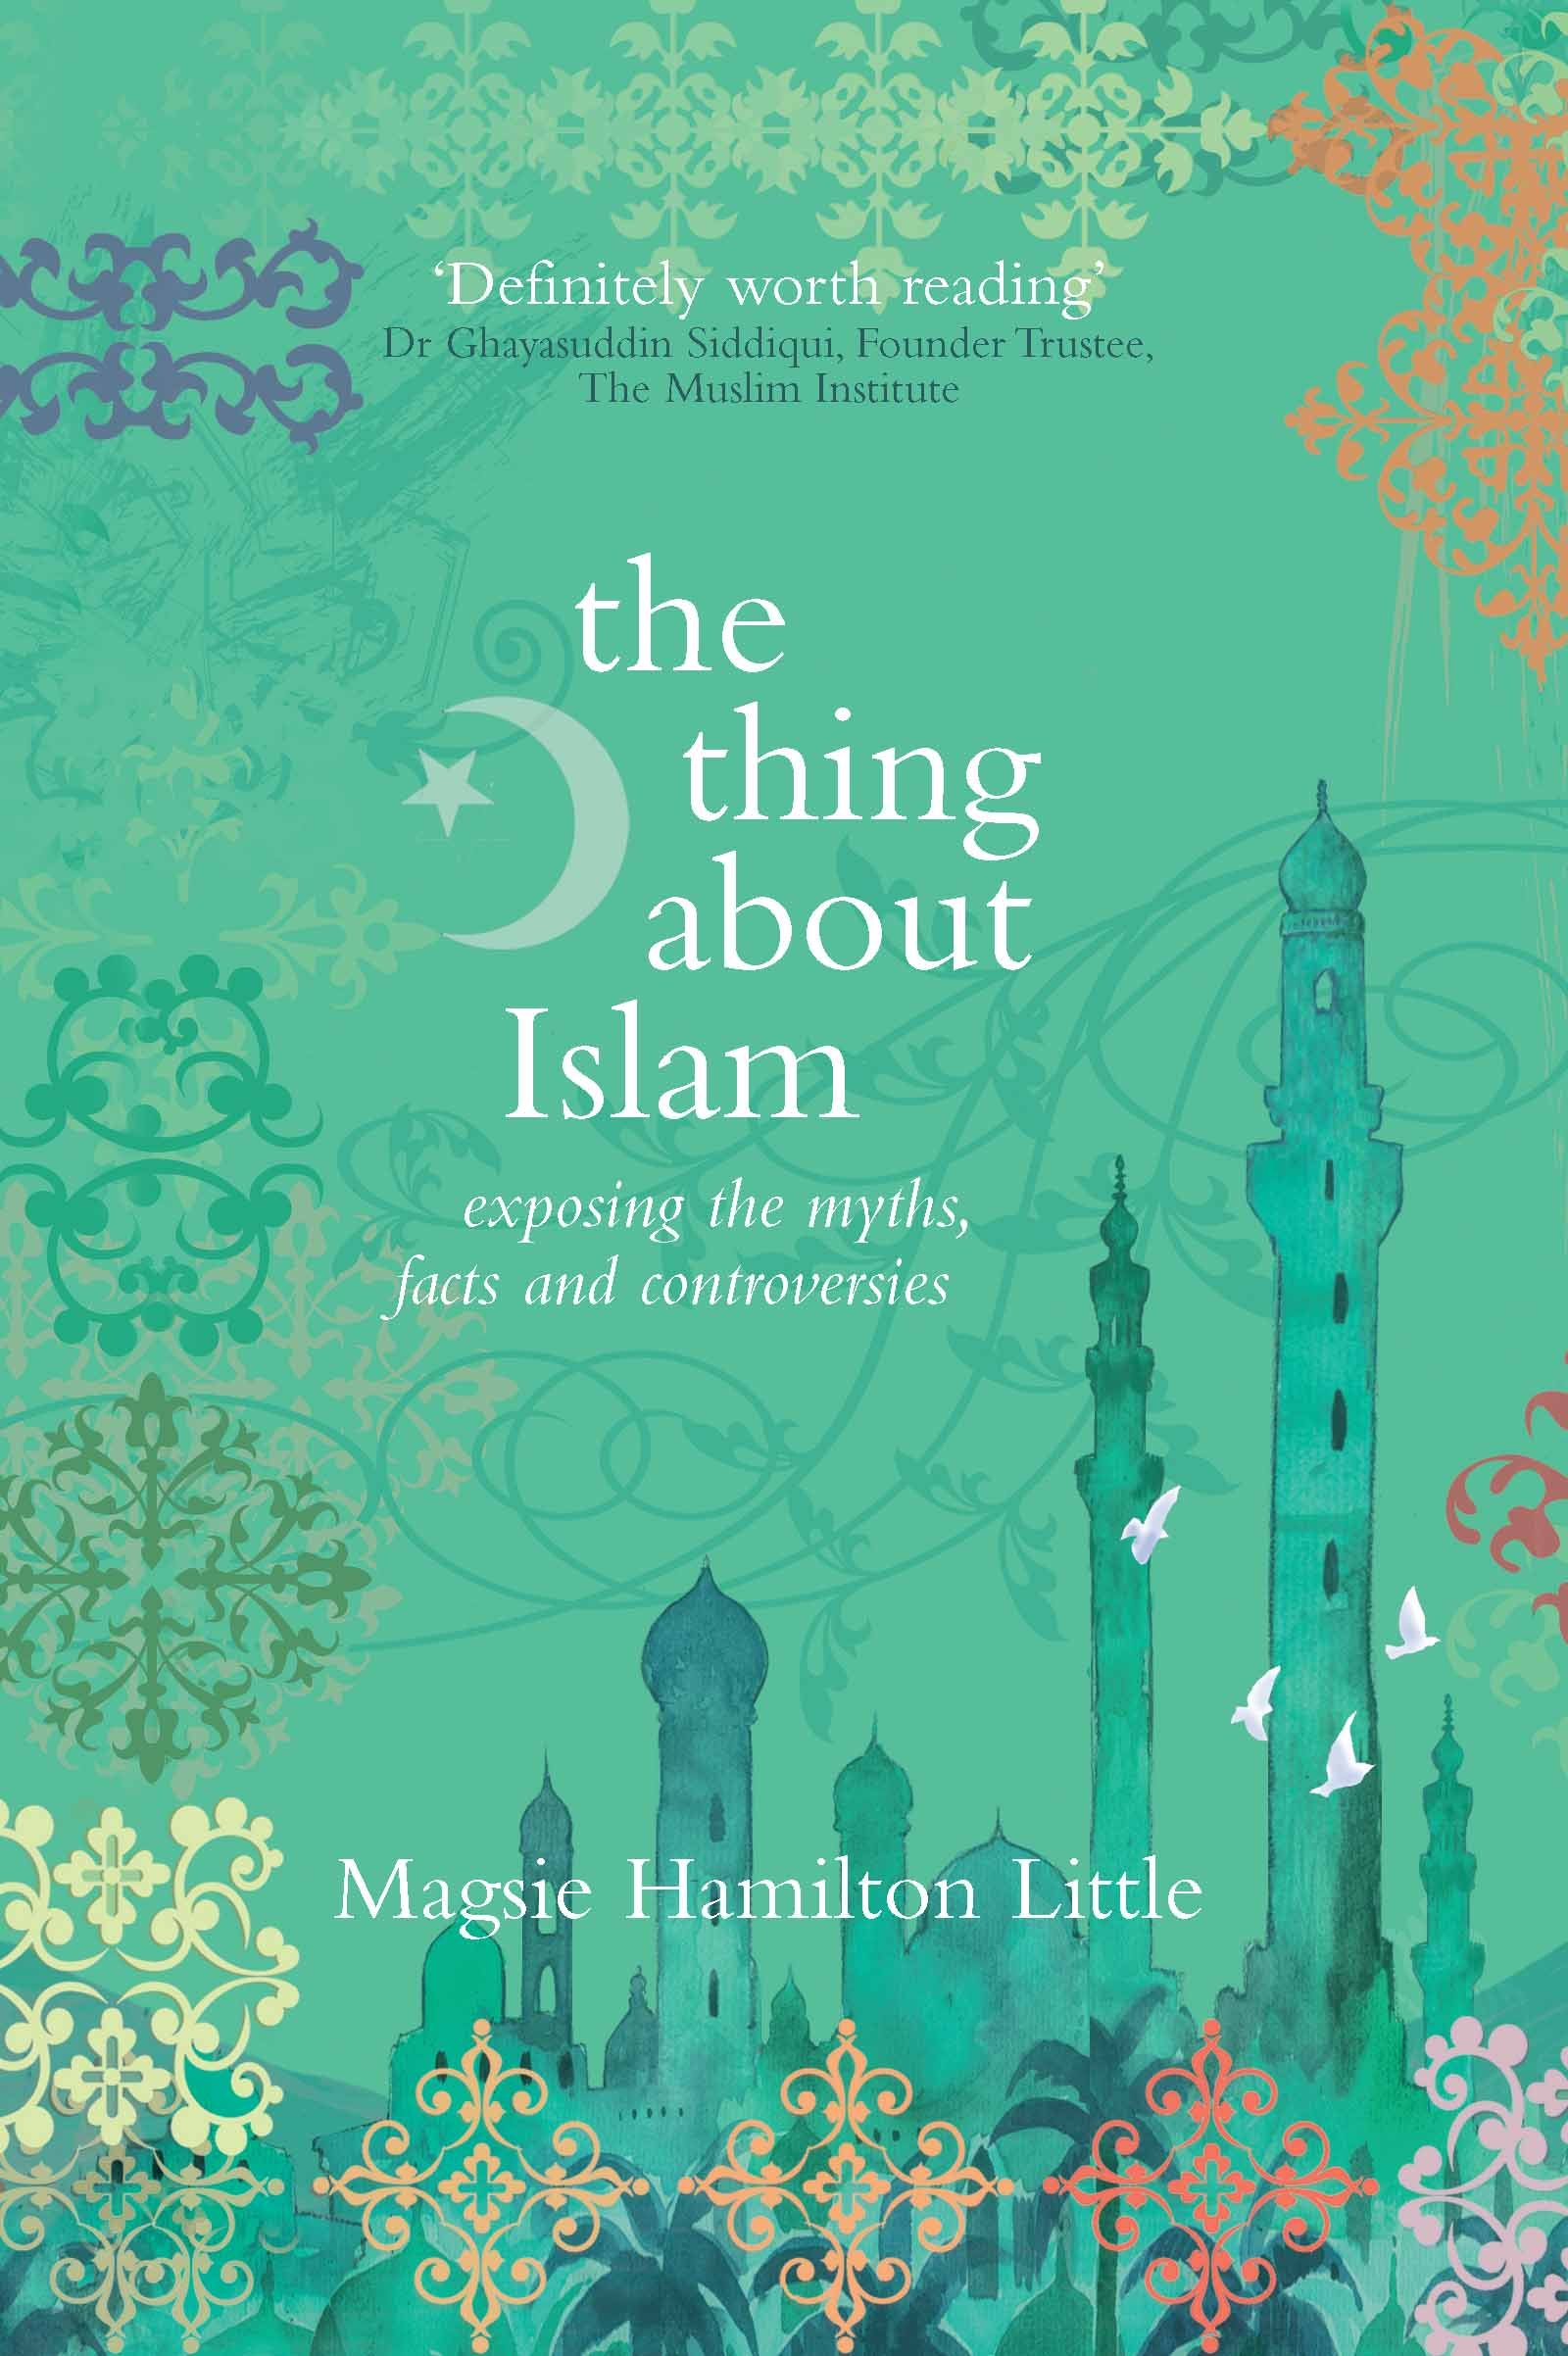 Thing about Islam: Little, Magsie Hamilton: 9781906251536: Amazon.com: Books